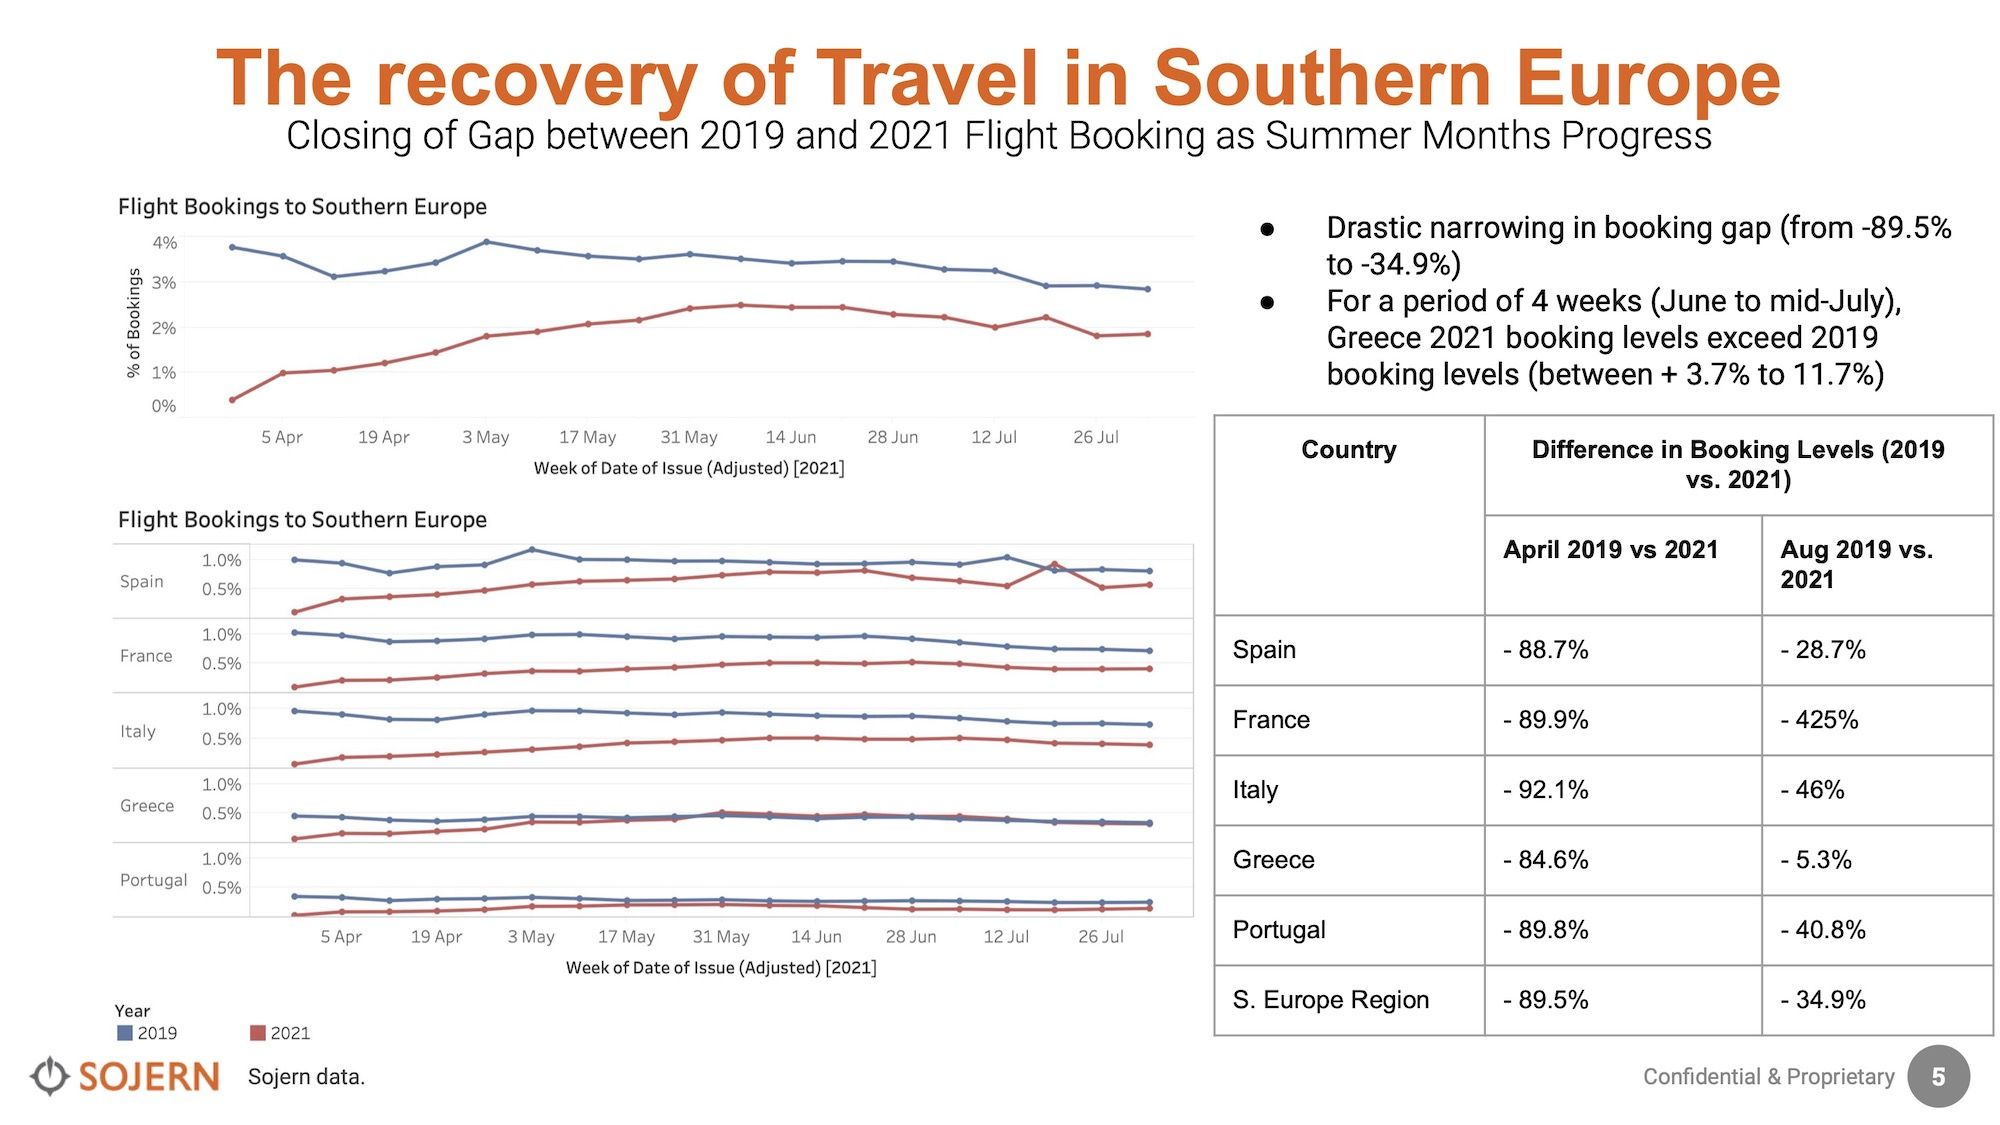 Sojern-South2ern-Europe-Travel-Trends-Insights-23-Aug-2021.jpg